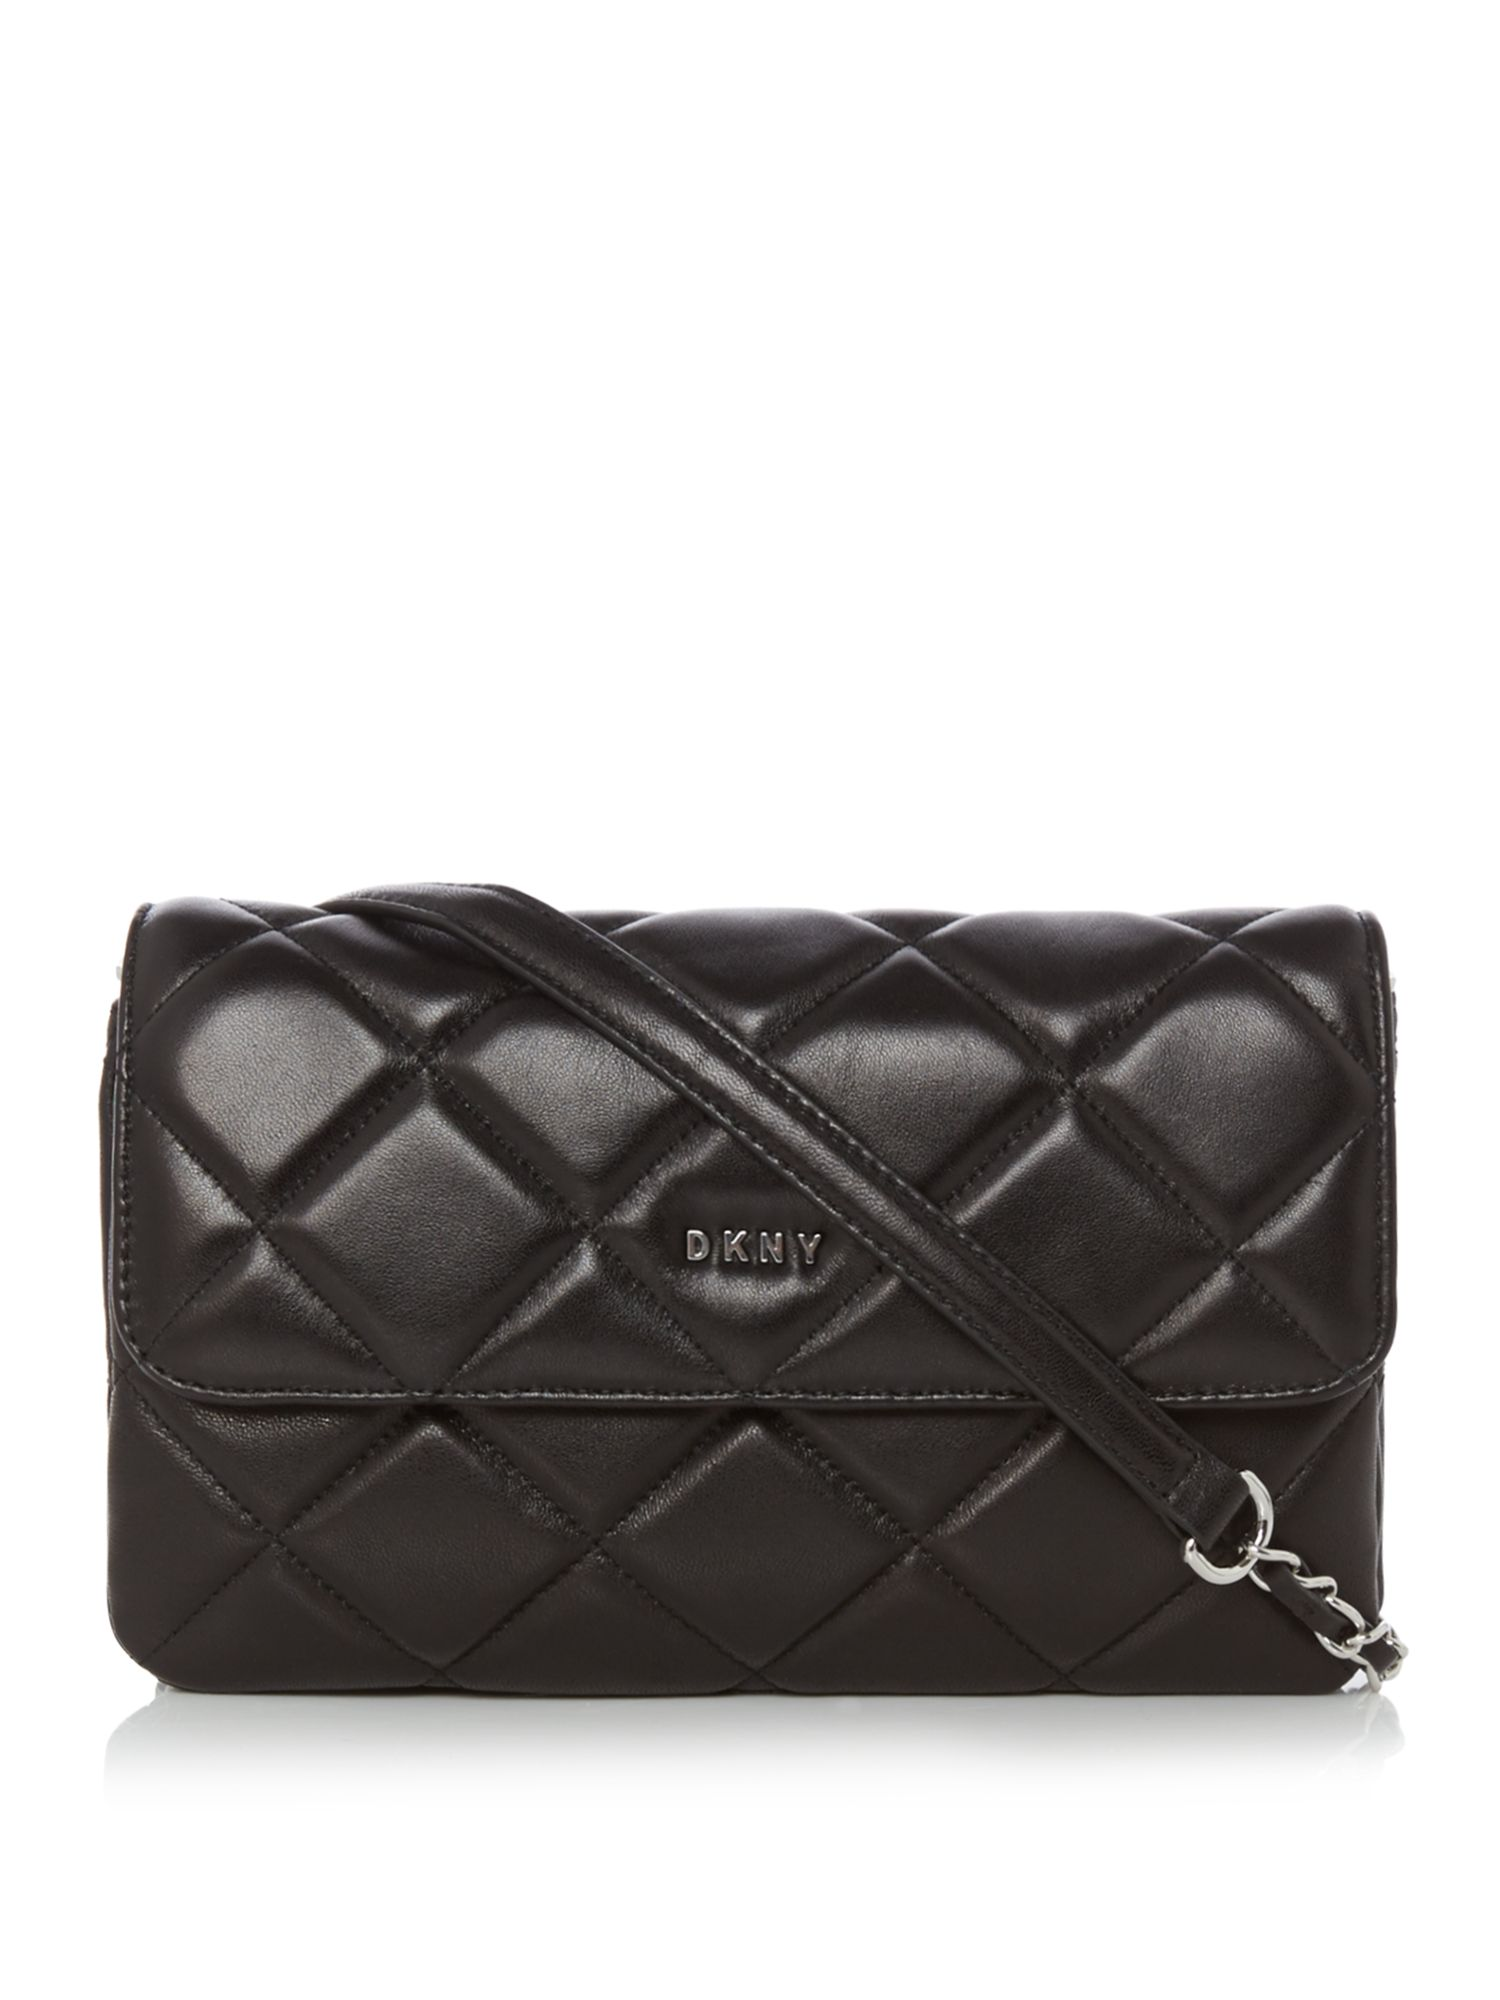 DKNY Barbara small quilted flap cross body bag, Black